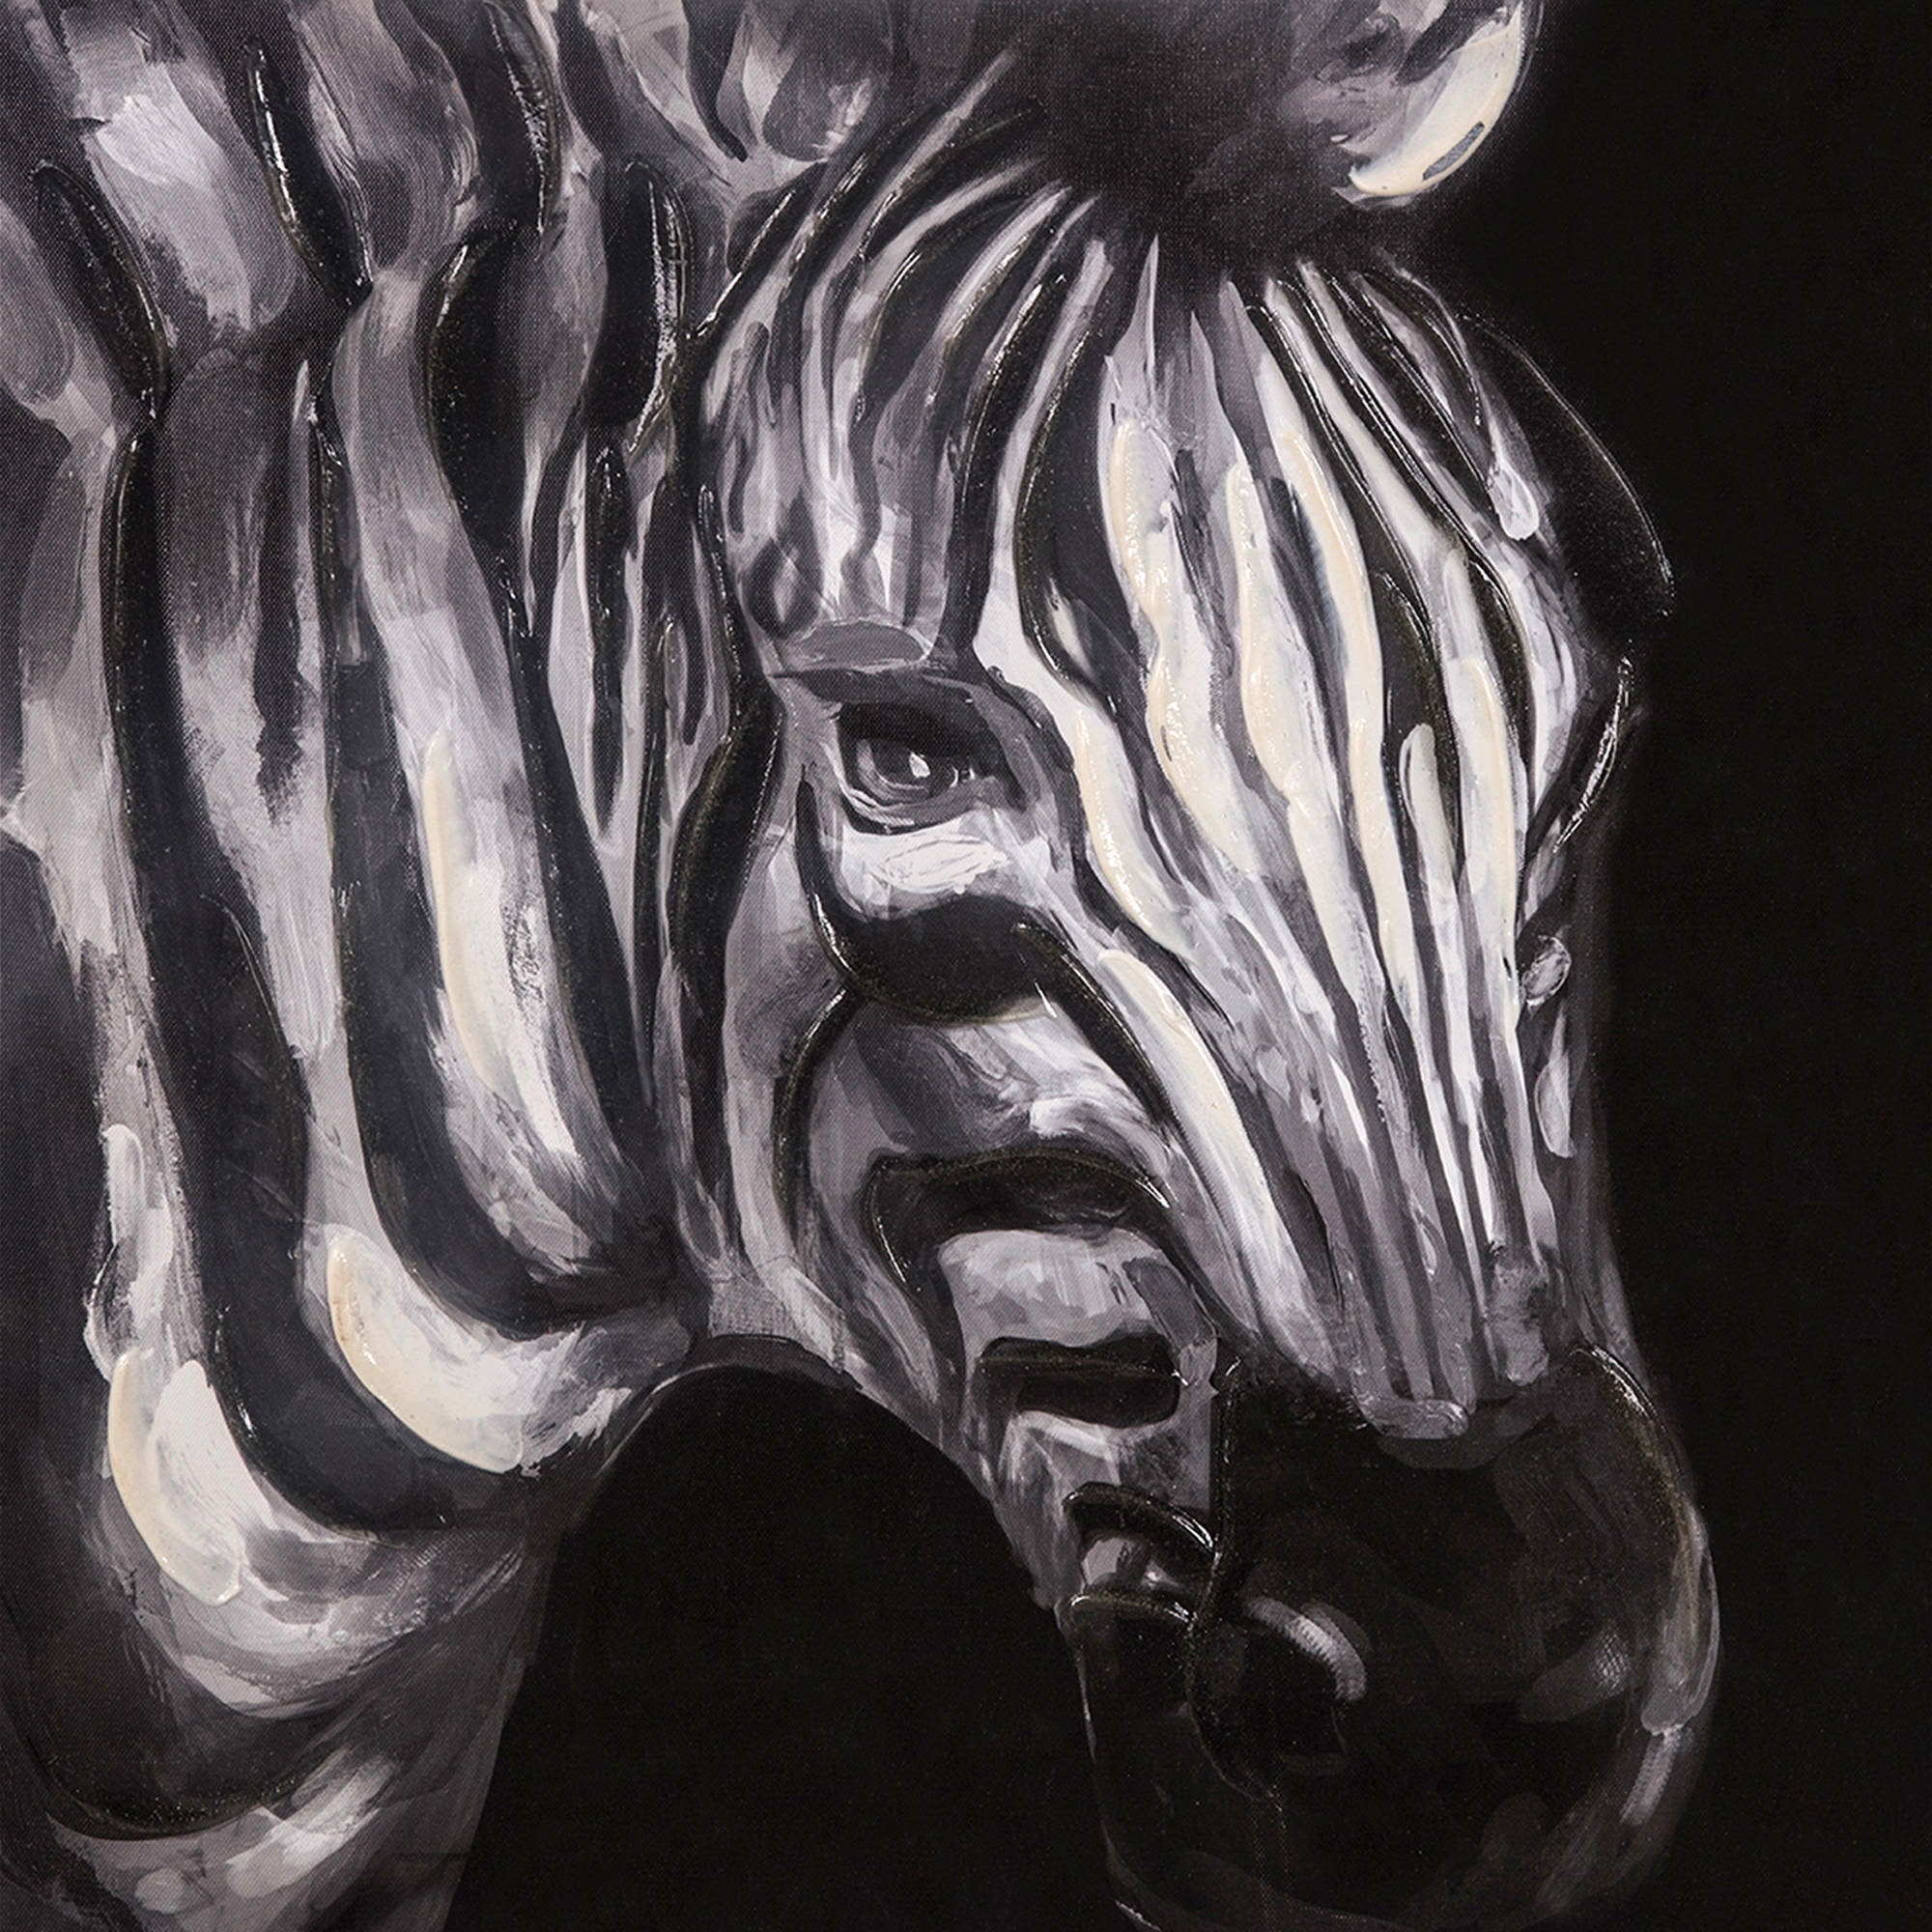 Painted Zebra Canvas Wall Art - 20 x 20 in.